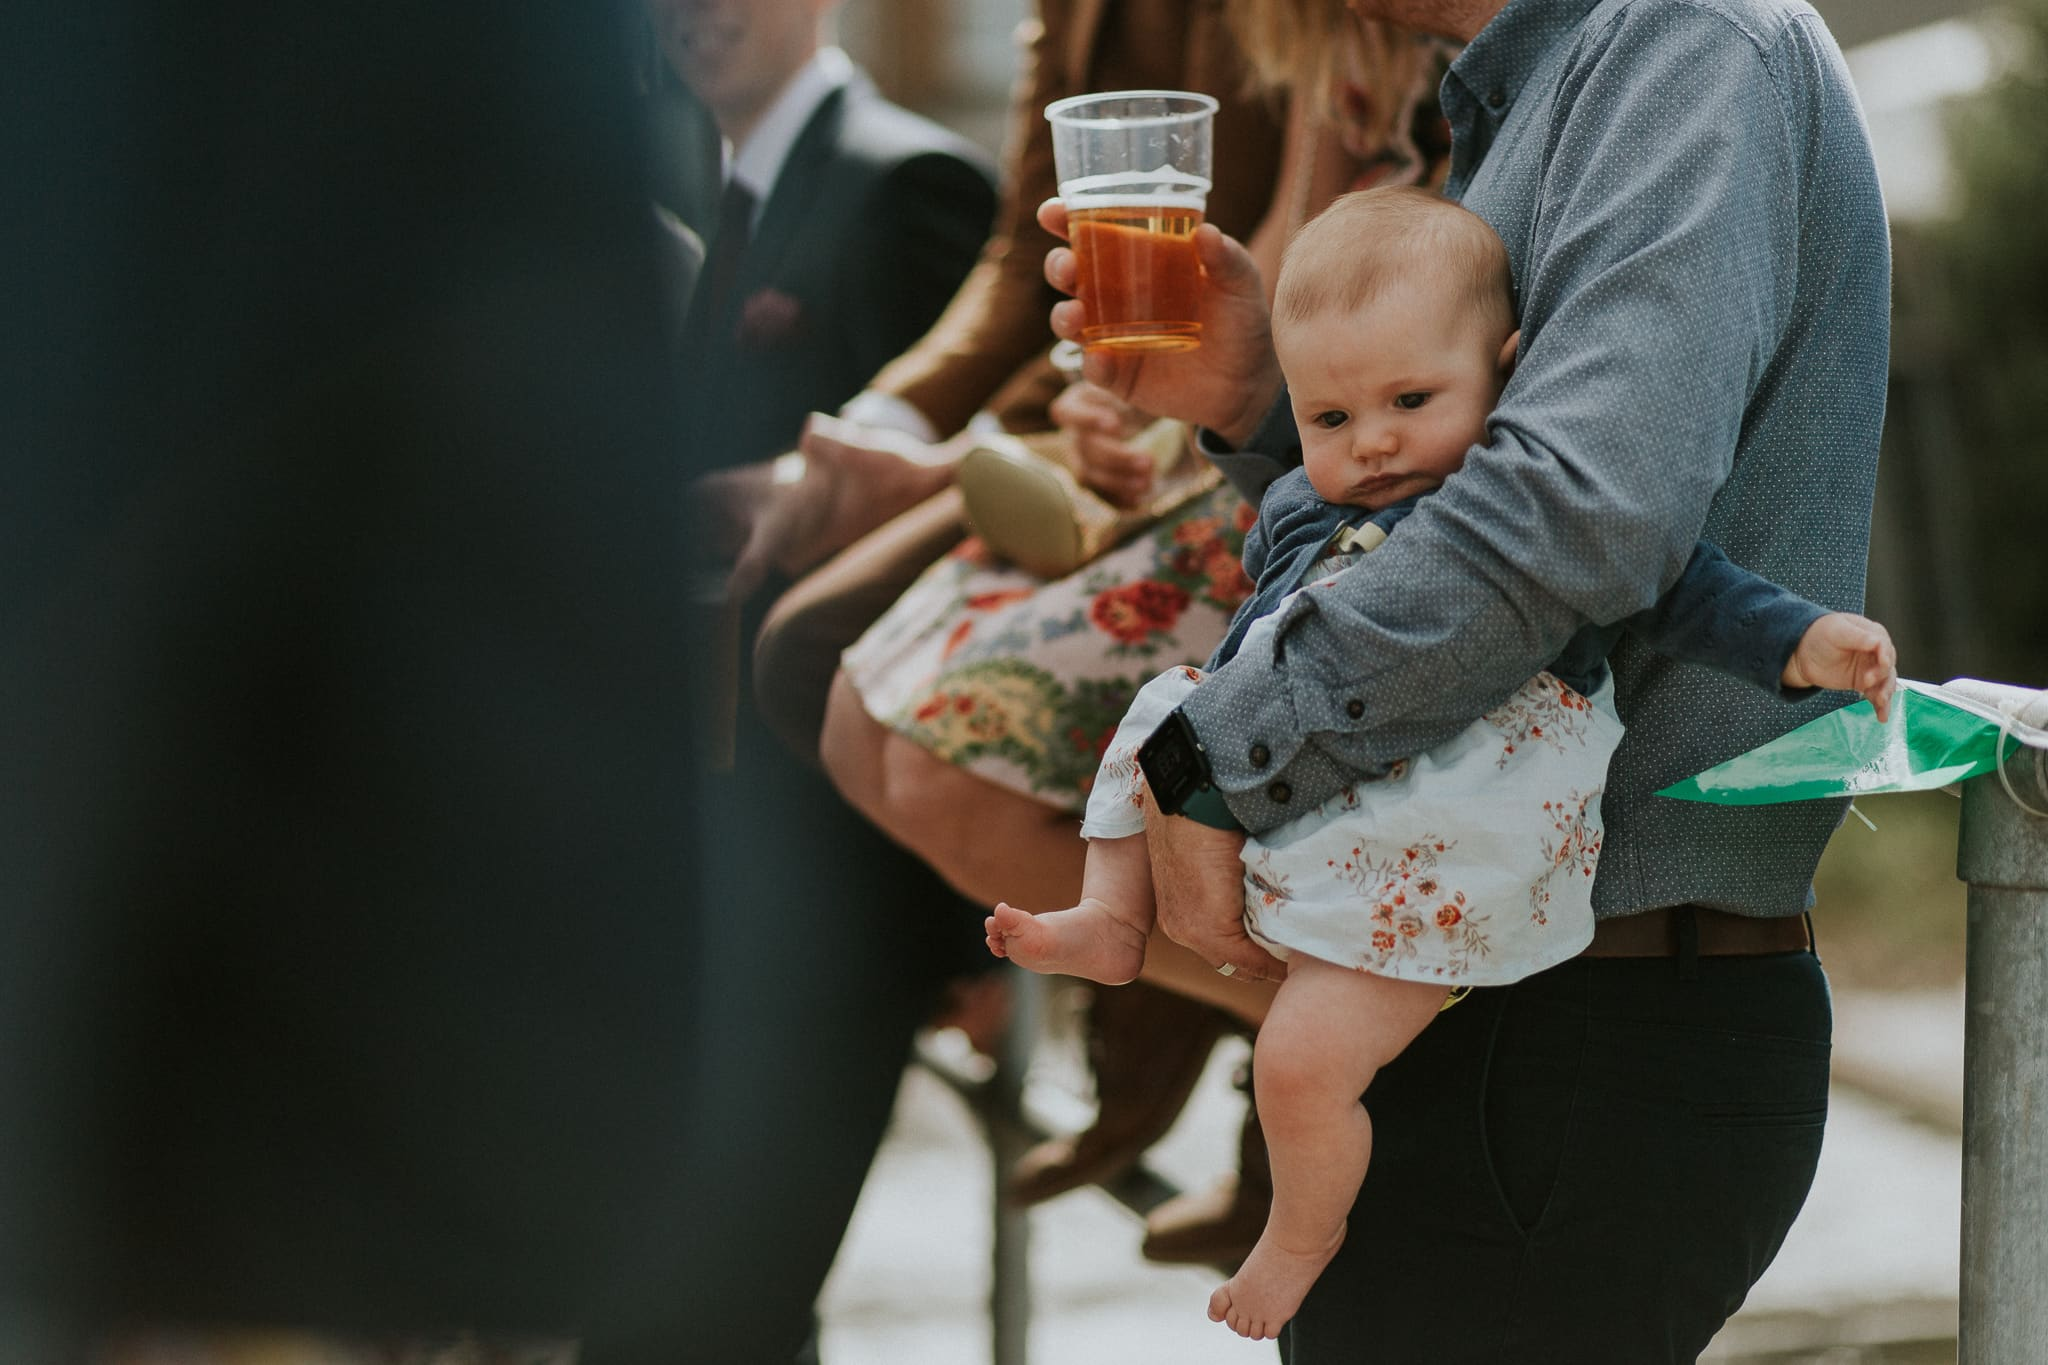 Wedding guest holding a baby during speeches